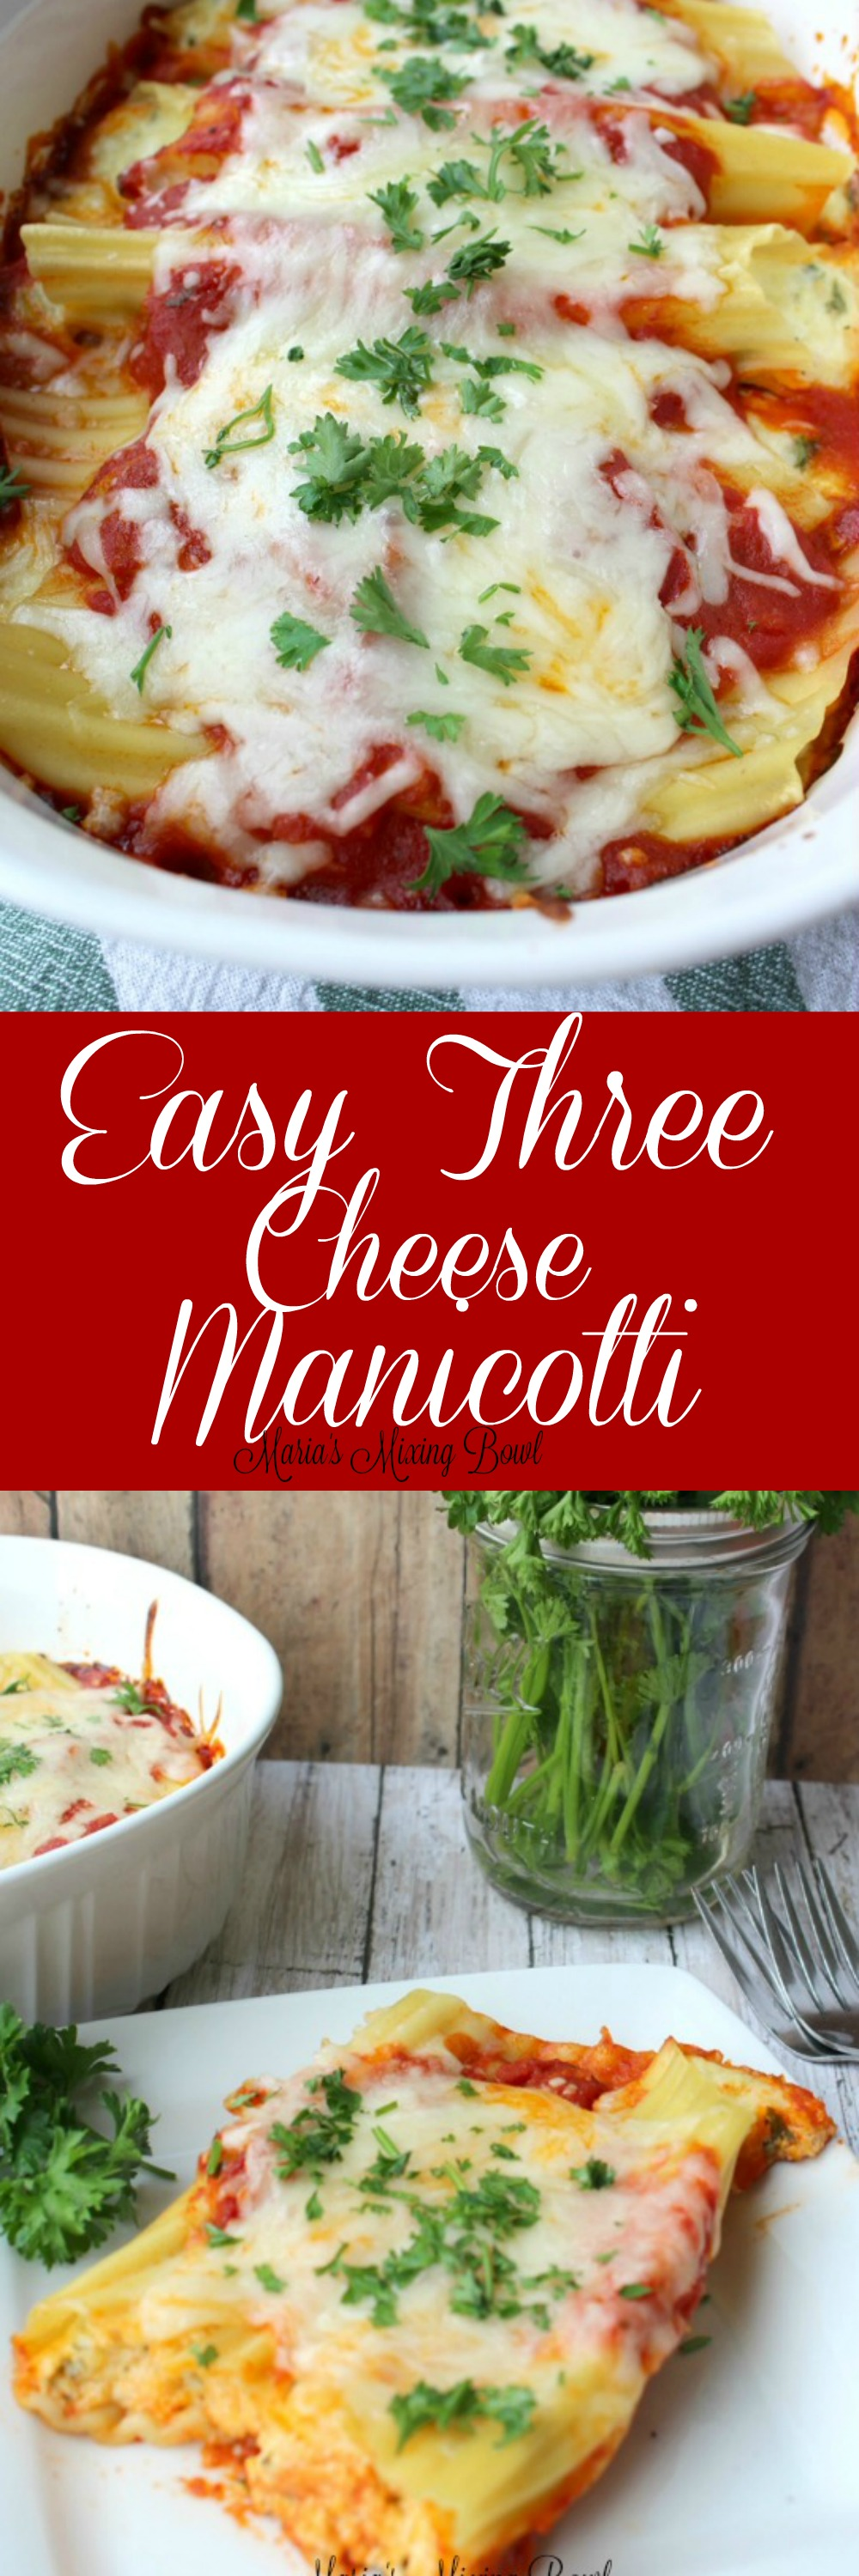 Easy Three Cheese Manicotti Recipe - This Easy Three Cheese Manicotti is a delicious combination of ricotta, mozzarella, and parmesan, this dish makes a perfect weeknight meal yet is fancy enough for a company dinner.